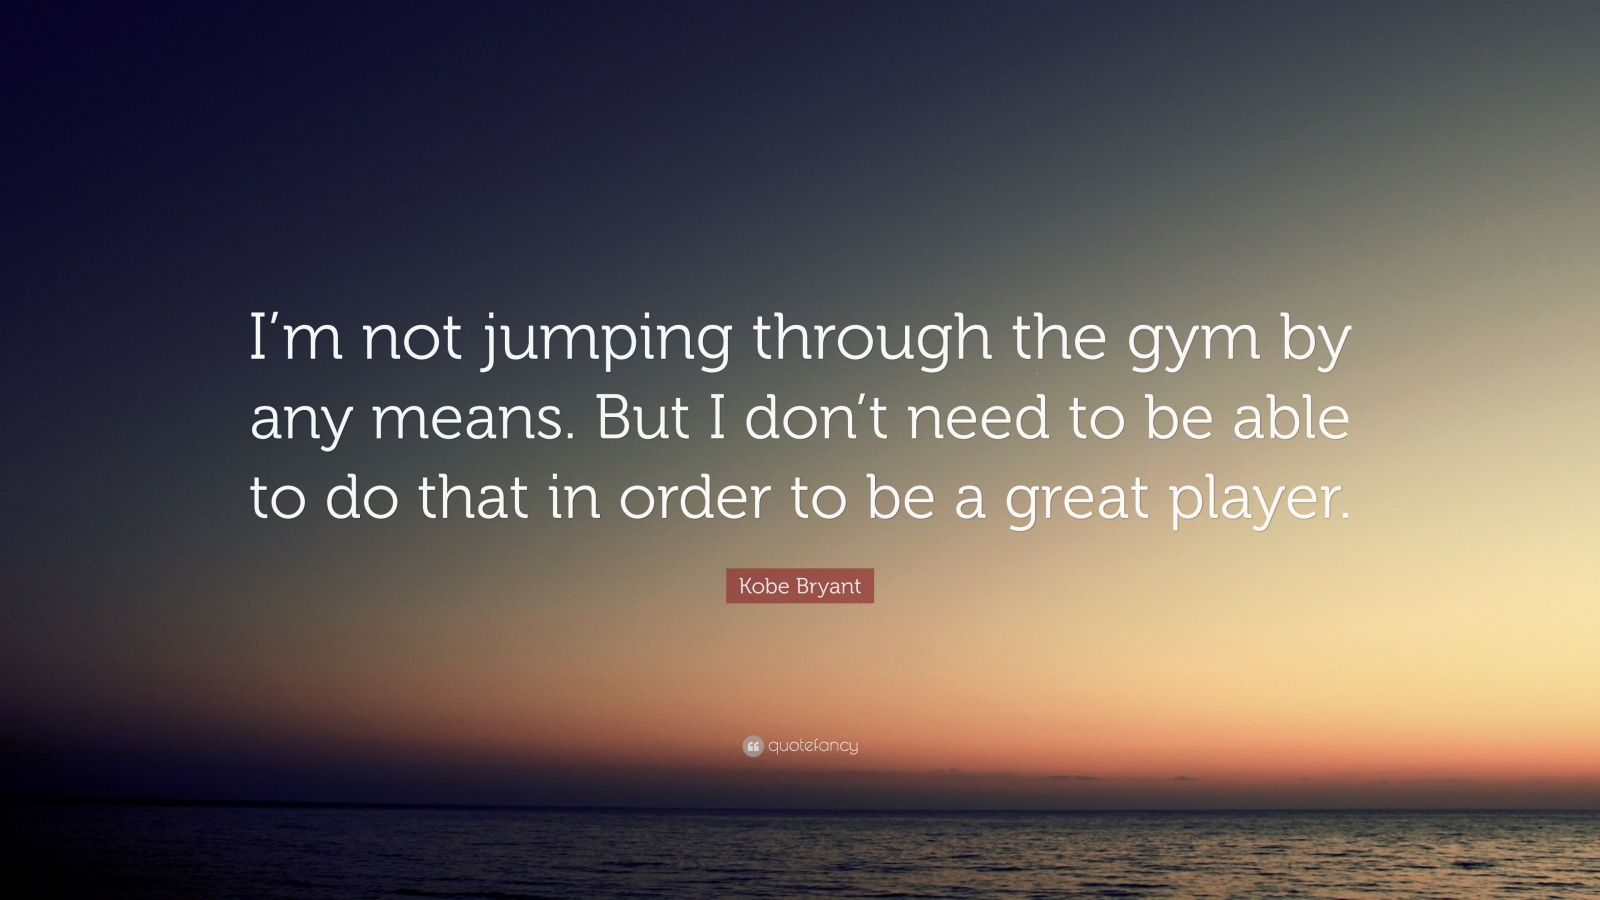 """Kobe Bryant Quote: """"I'm not jumping through the gym by any means. But I don't need to be able to do that in order to be a great player."""""""